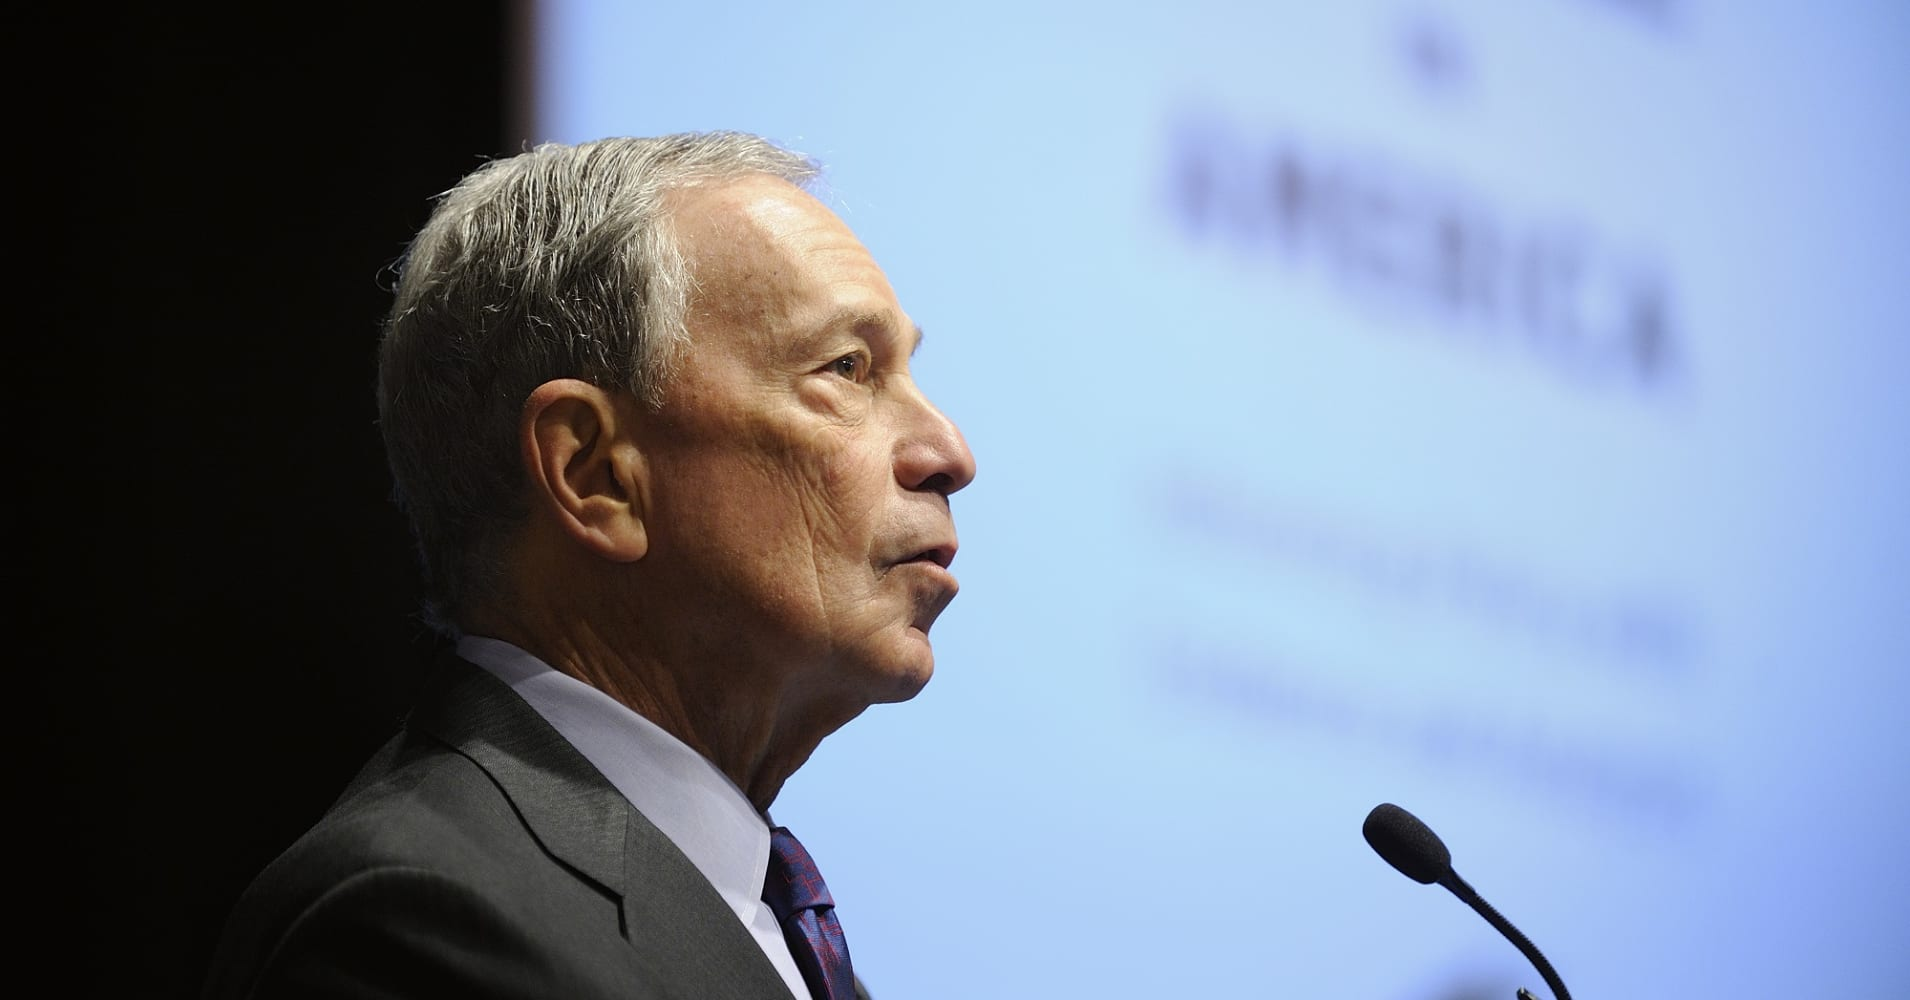 Michael Bloomberg's $1.8 billion gift to Johns Hopkins is historic, but not everyone agrees it will have a lasting impact